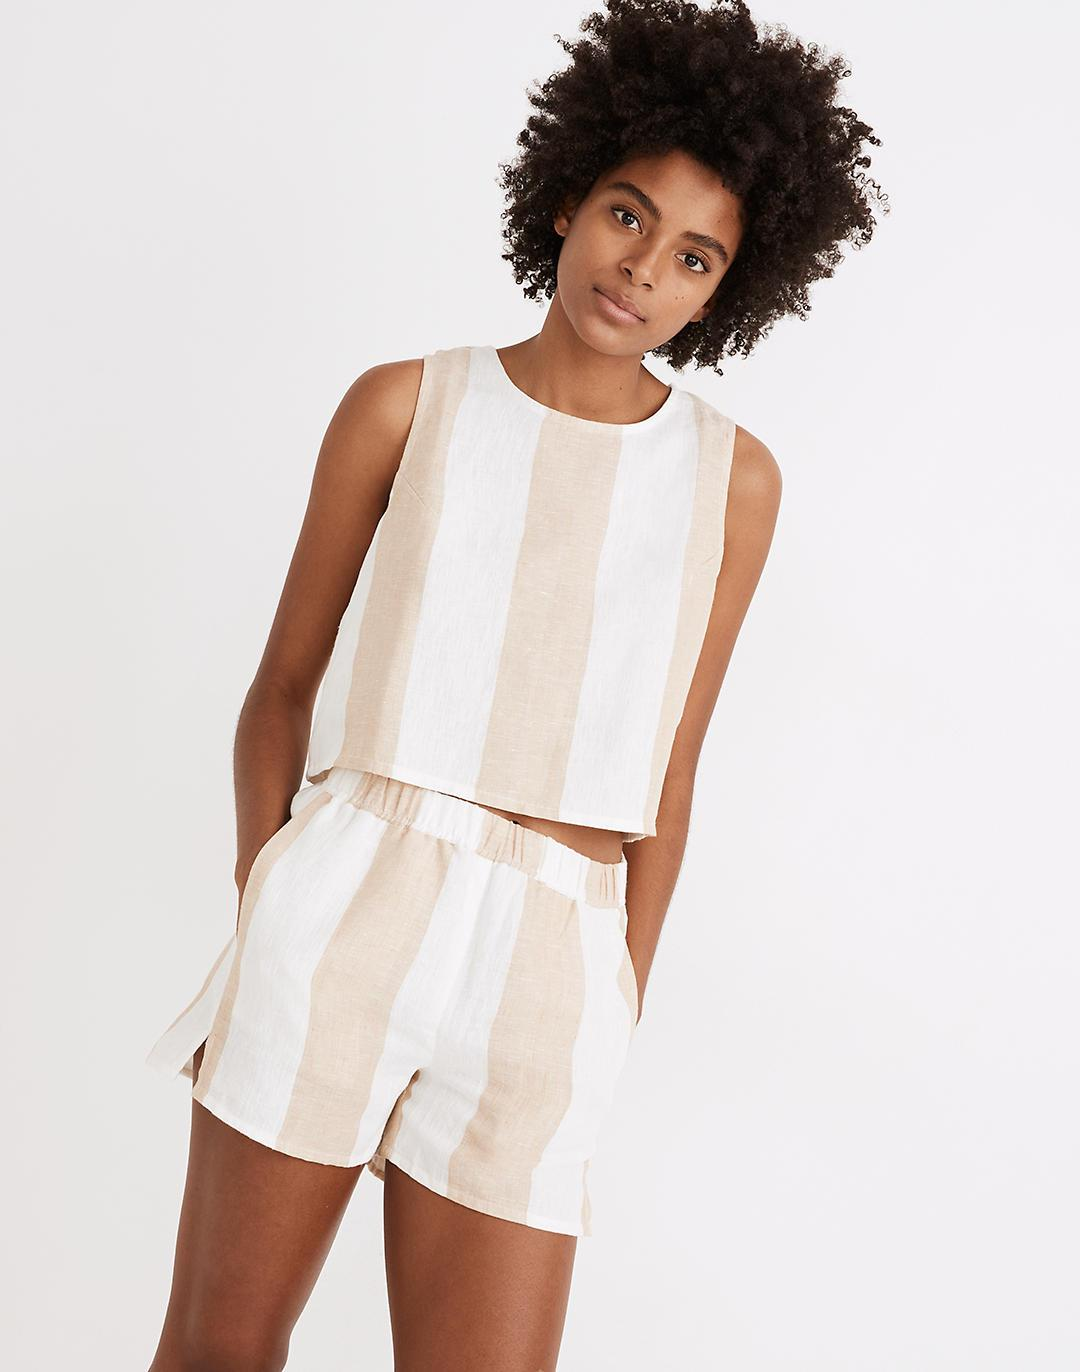 Madewell x LAUDE the Label Open-Back Tank in Tulum Stripe